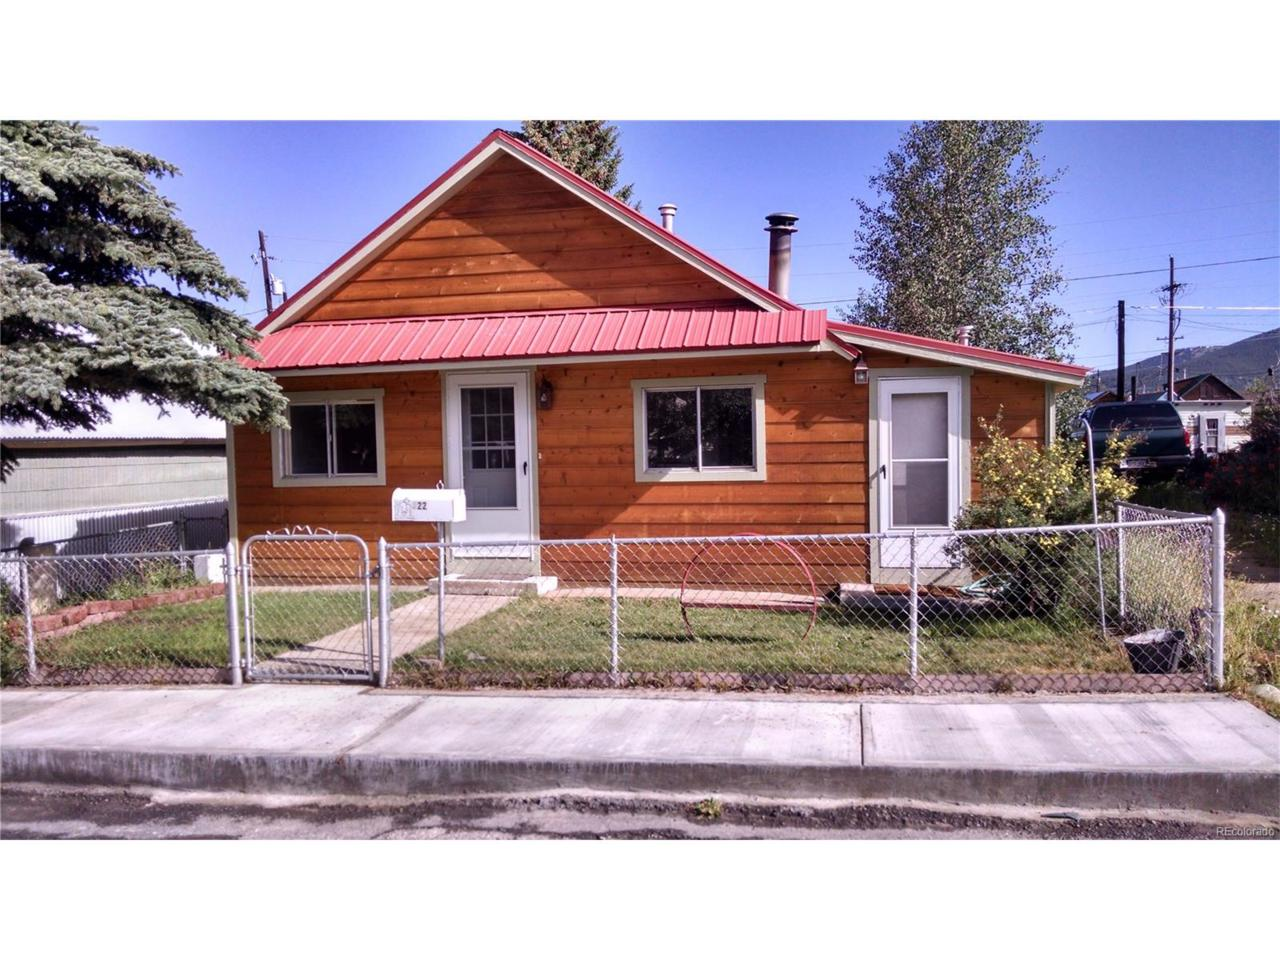 122 E 11th Street, Leadville, CO 80461 (MLS #6944284) :: 8z Real Estate